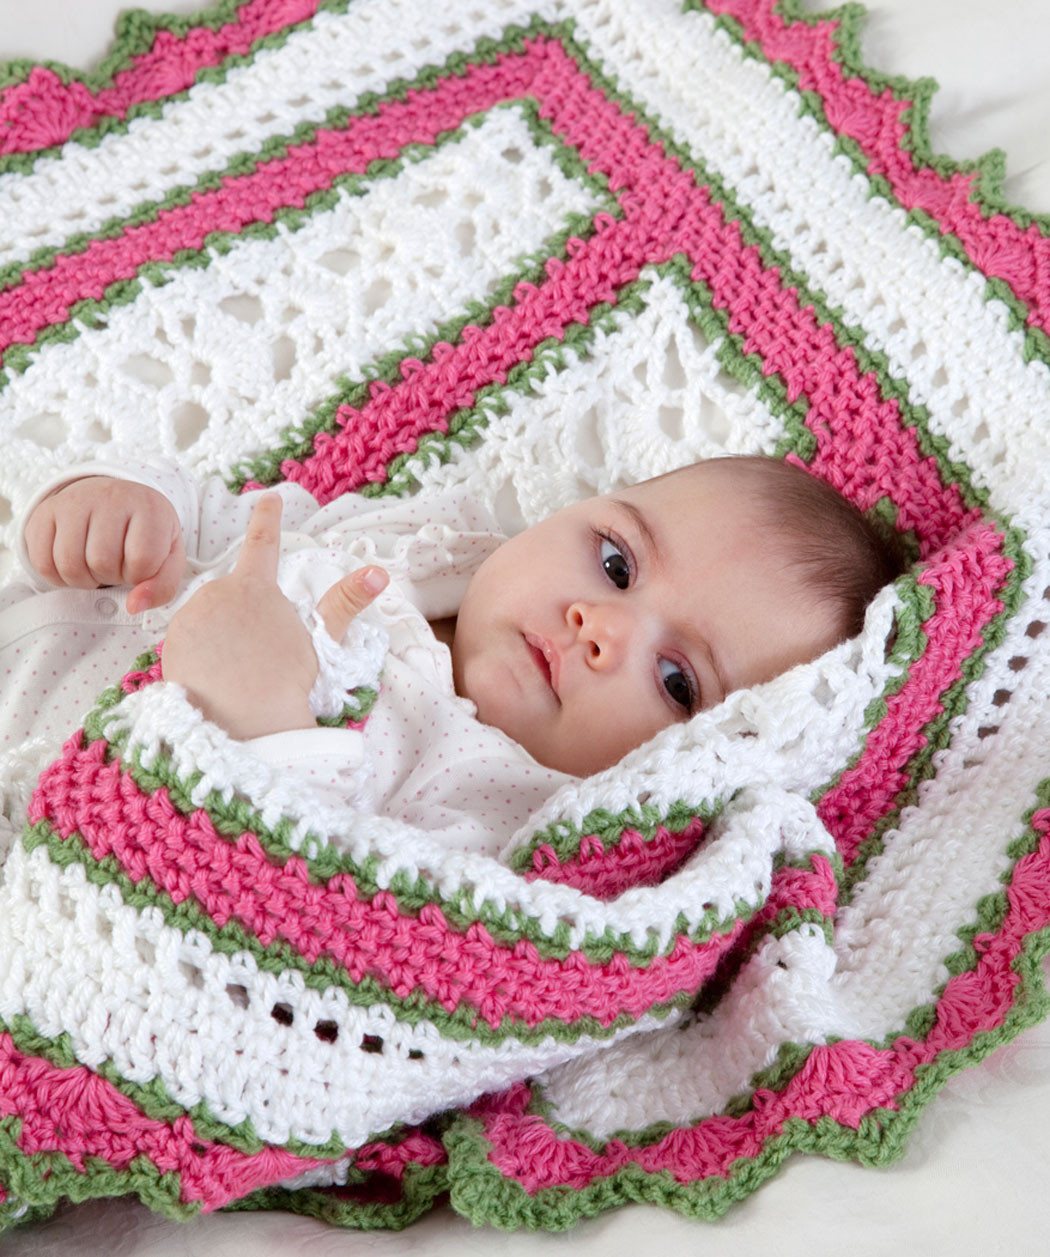 Baby Boy Crochet Blanket Patterns Best Of 10 Beautiful Baby Blanket Free Patterns Of Baby Boy Crochet Blanket Patterns Elegant Fiber Flux Beautiful Blankets 30 Free Crochet Blanket